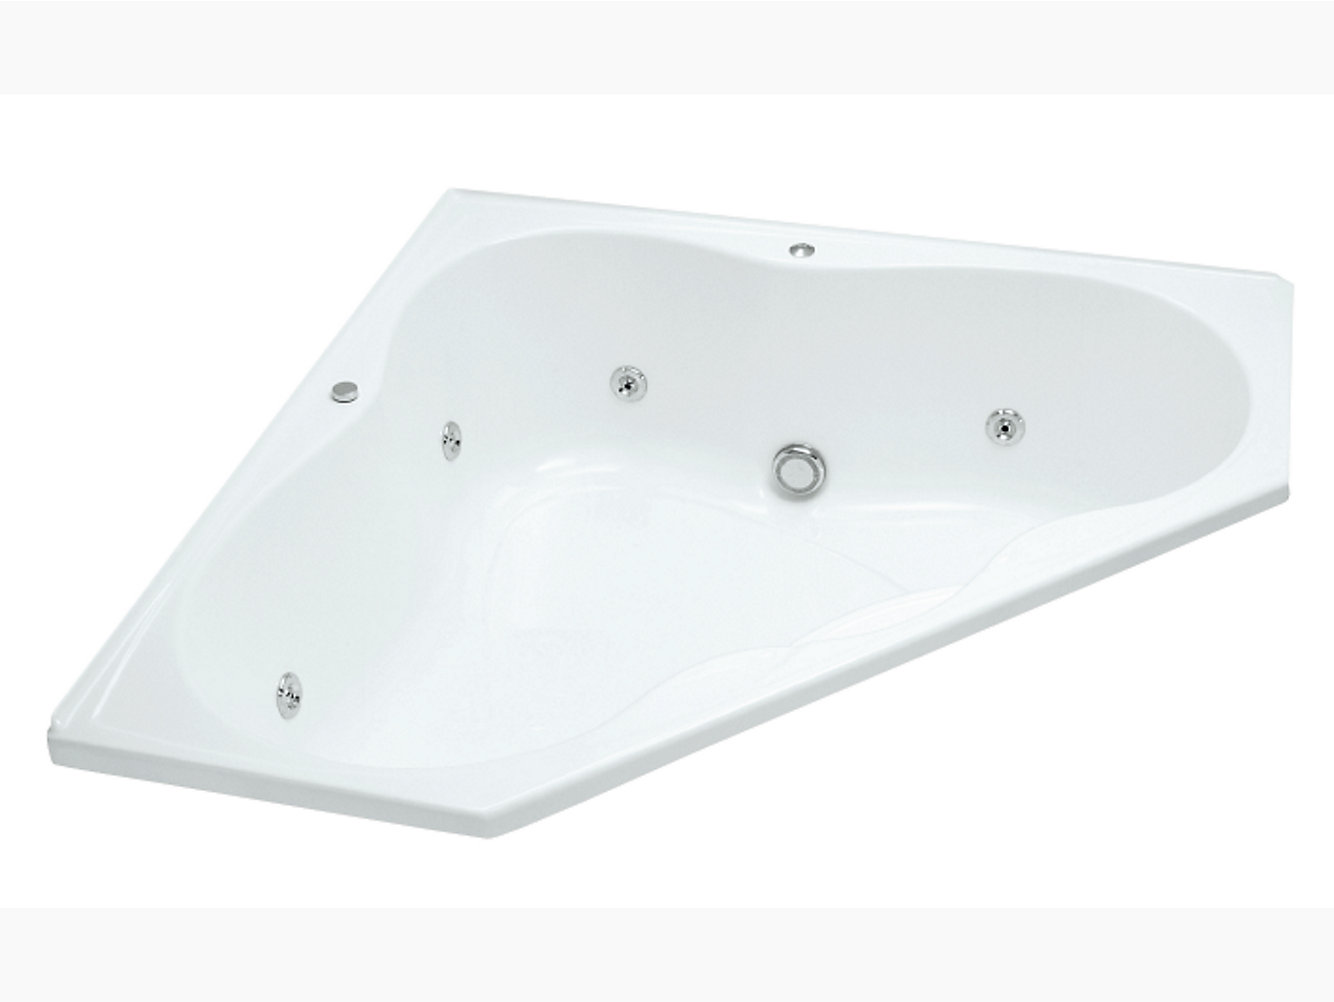 Emerald acrylic drop-in whirlpool | K-18777T | KOHLER